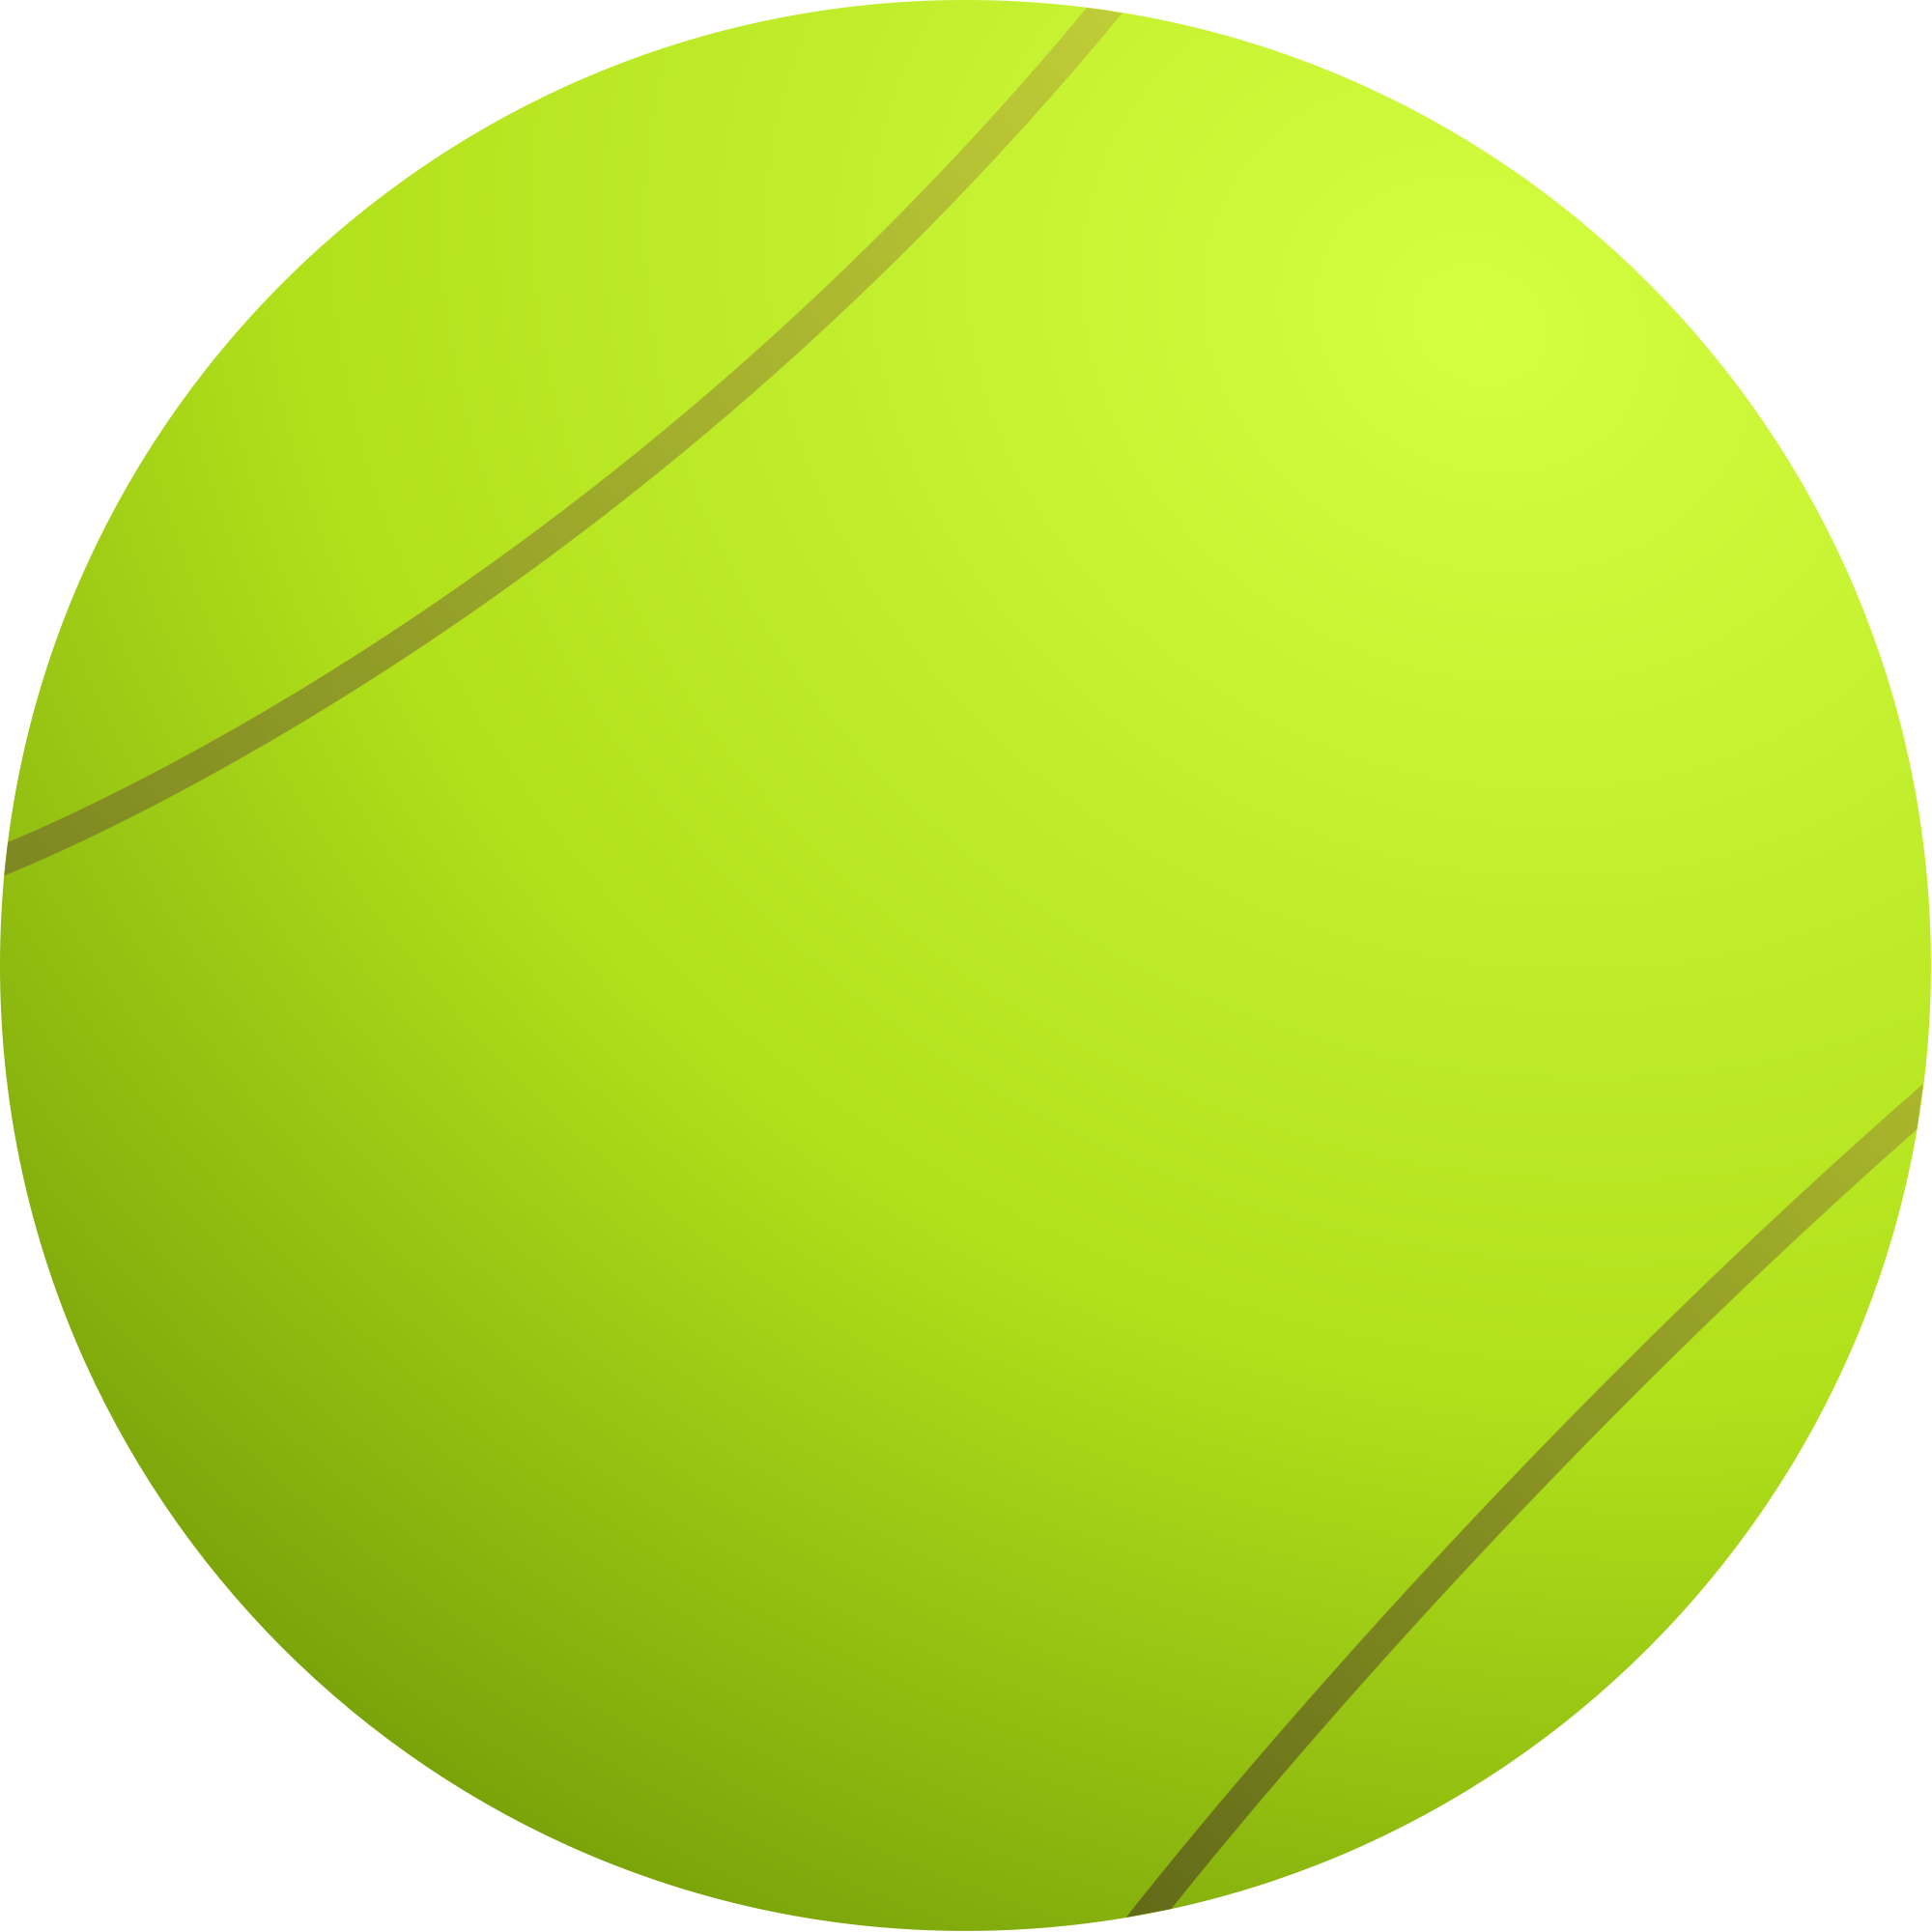 Tennis Transparent Image Tennis Ball Png Images Tennis